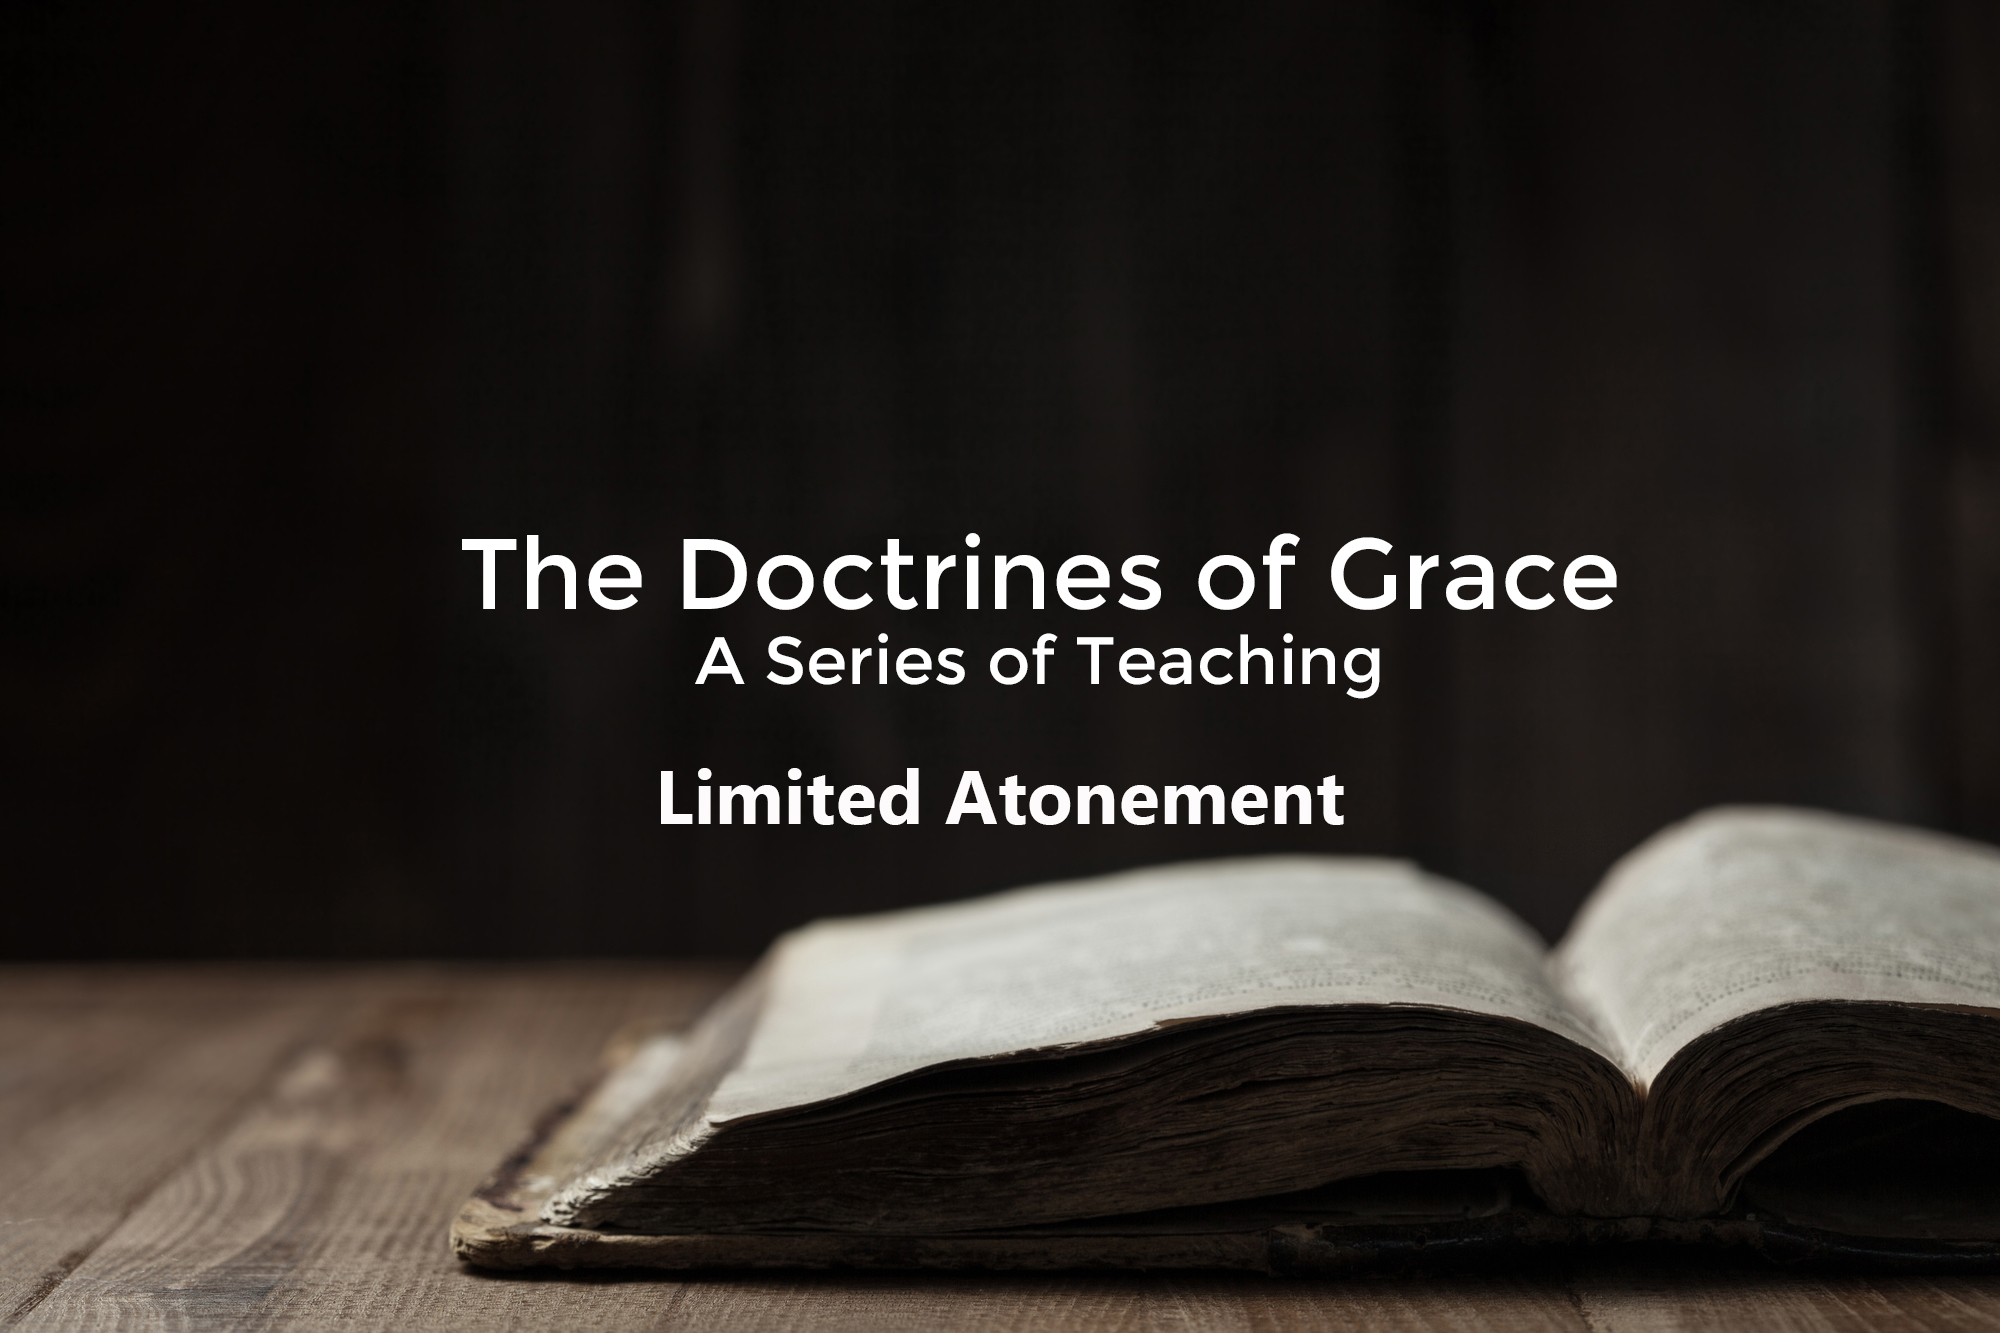 The Doctrines of Grace – Limited Atonement